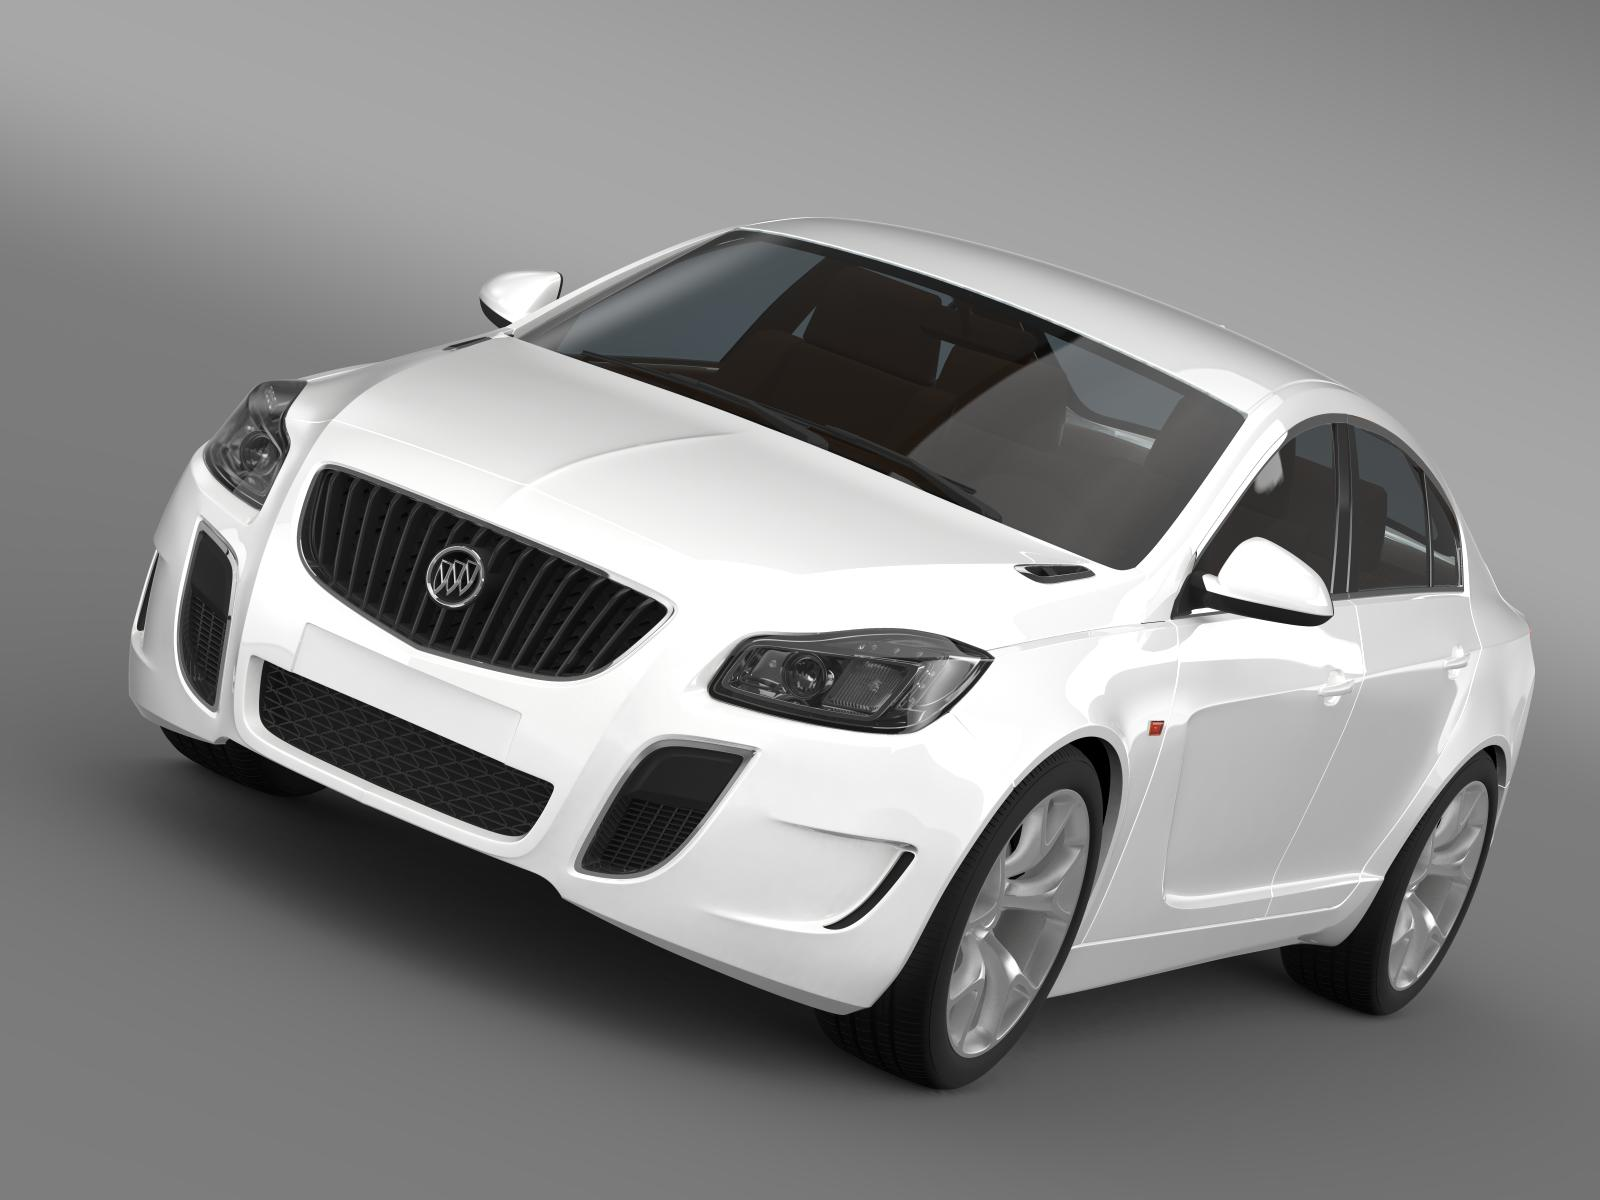 buick regal gs concept 2010 3d model 3ds max fbx c4d lwo ma mb hrc xsi obj 164492